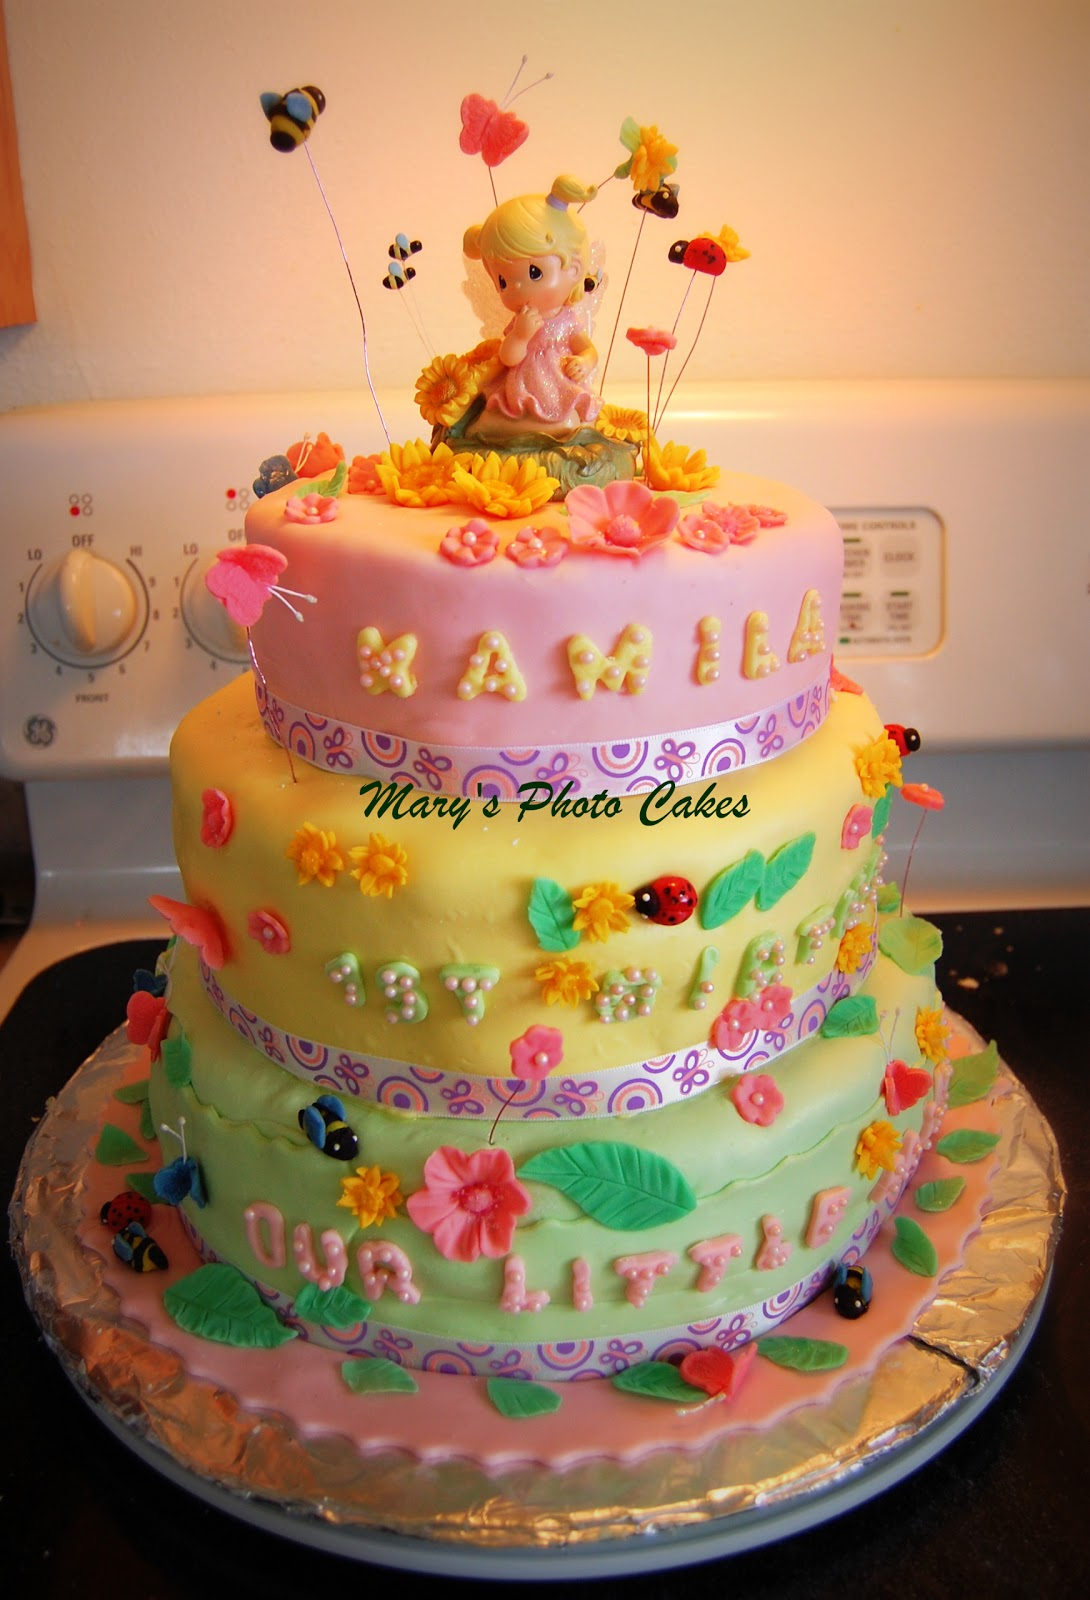 Images Of Birthday Cake For One Year Old Baby Girl : Mary s Photo Cakes: Precious Moments Cake for a 1 Year Old ...